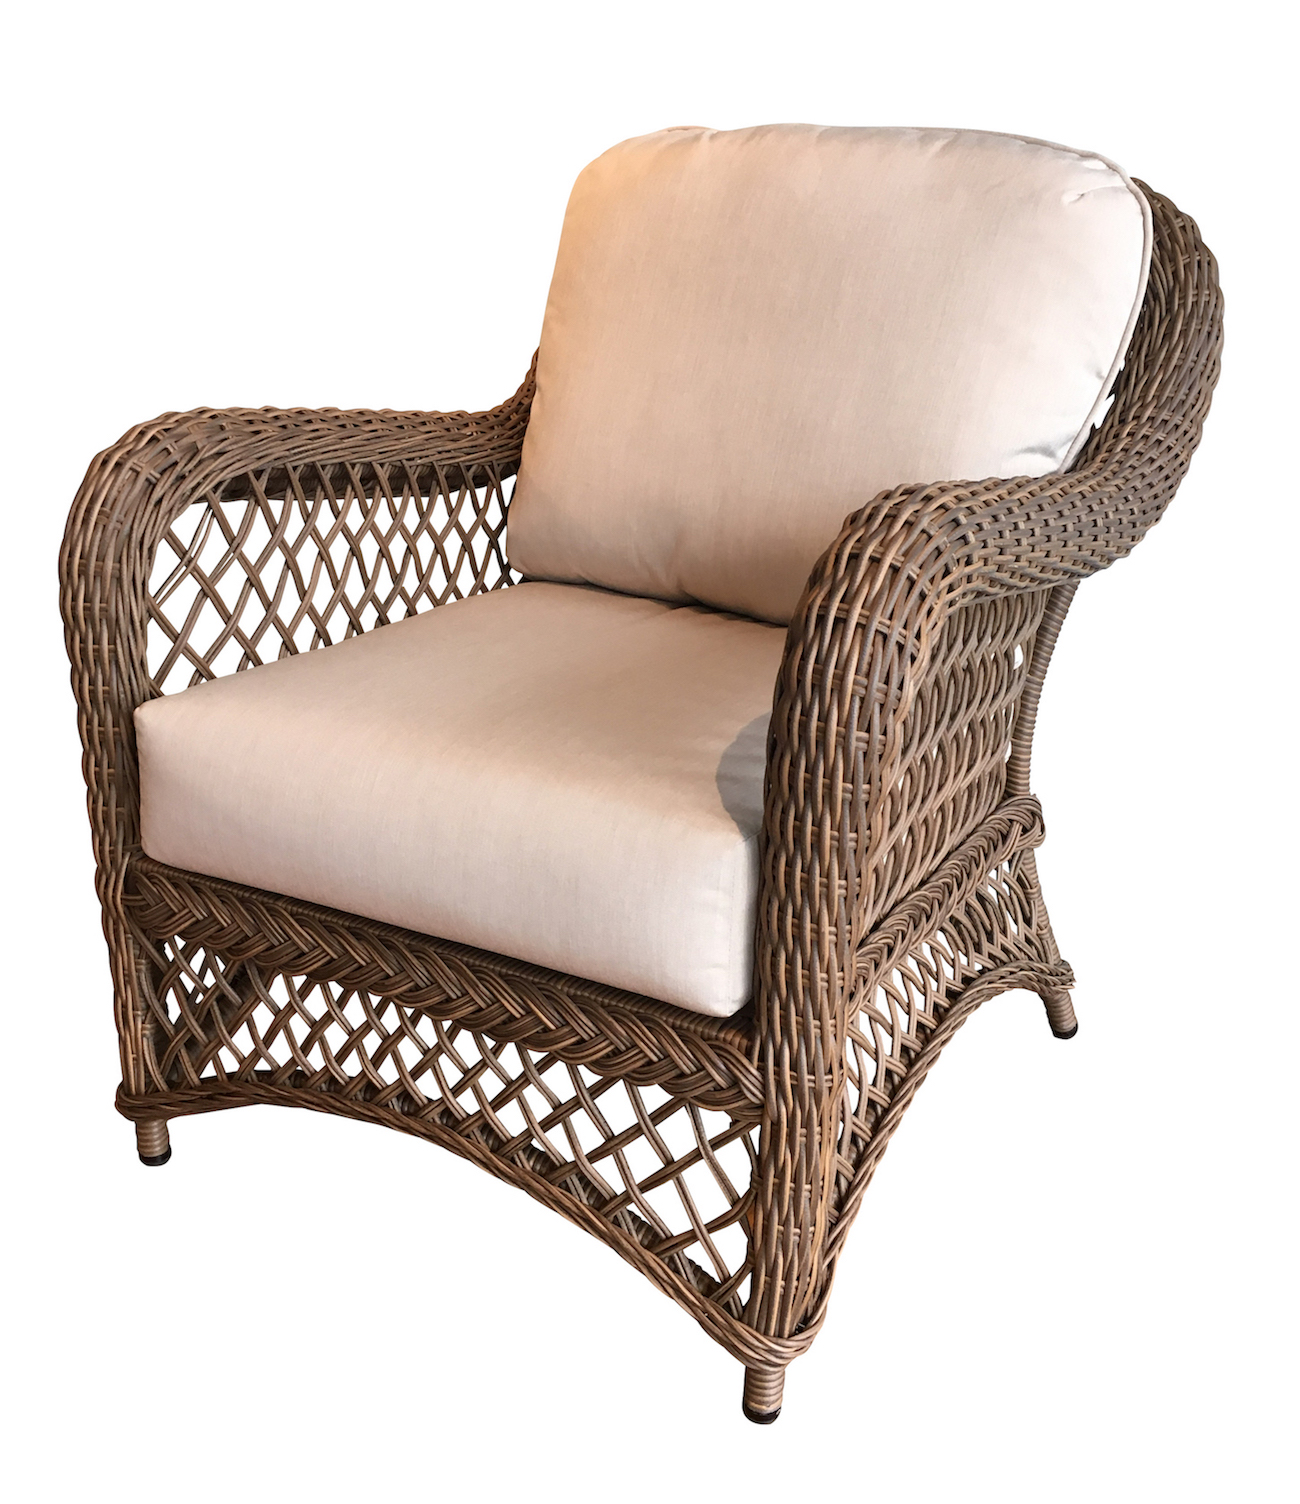 Outdoor Patio Furniture Savannah Ga: Outdoor Wicker Chair